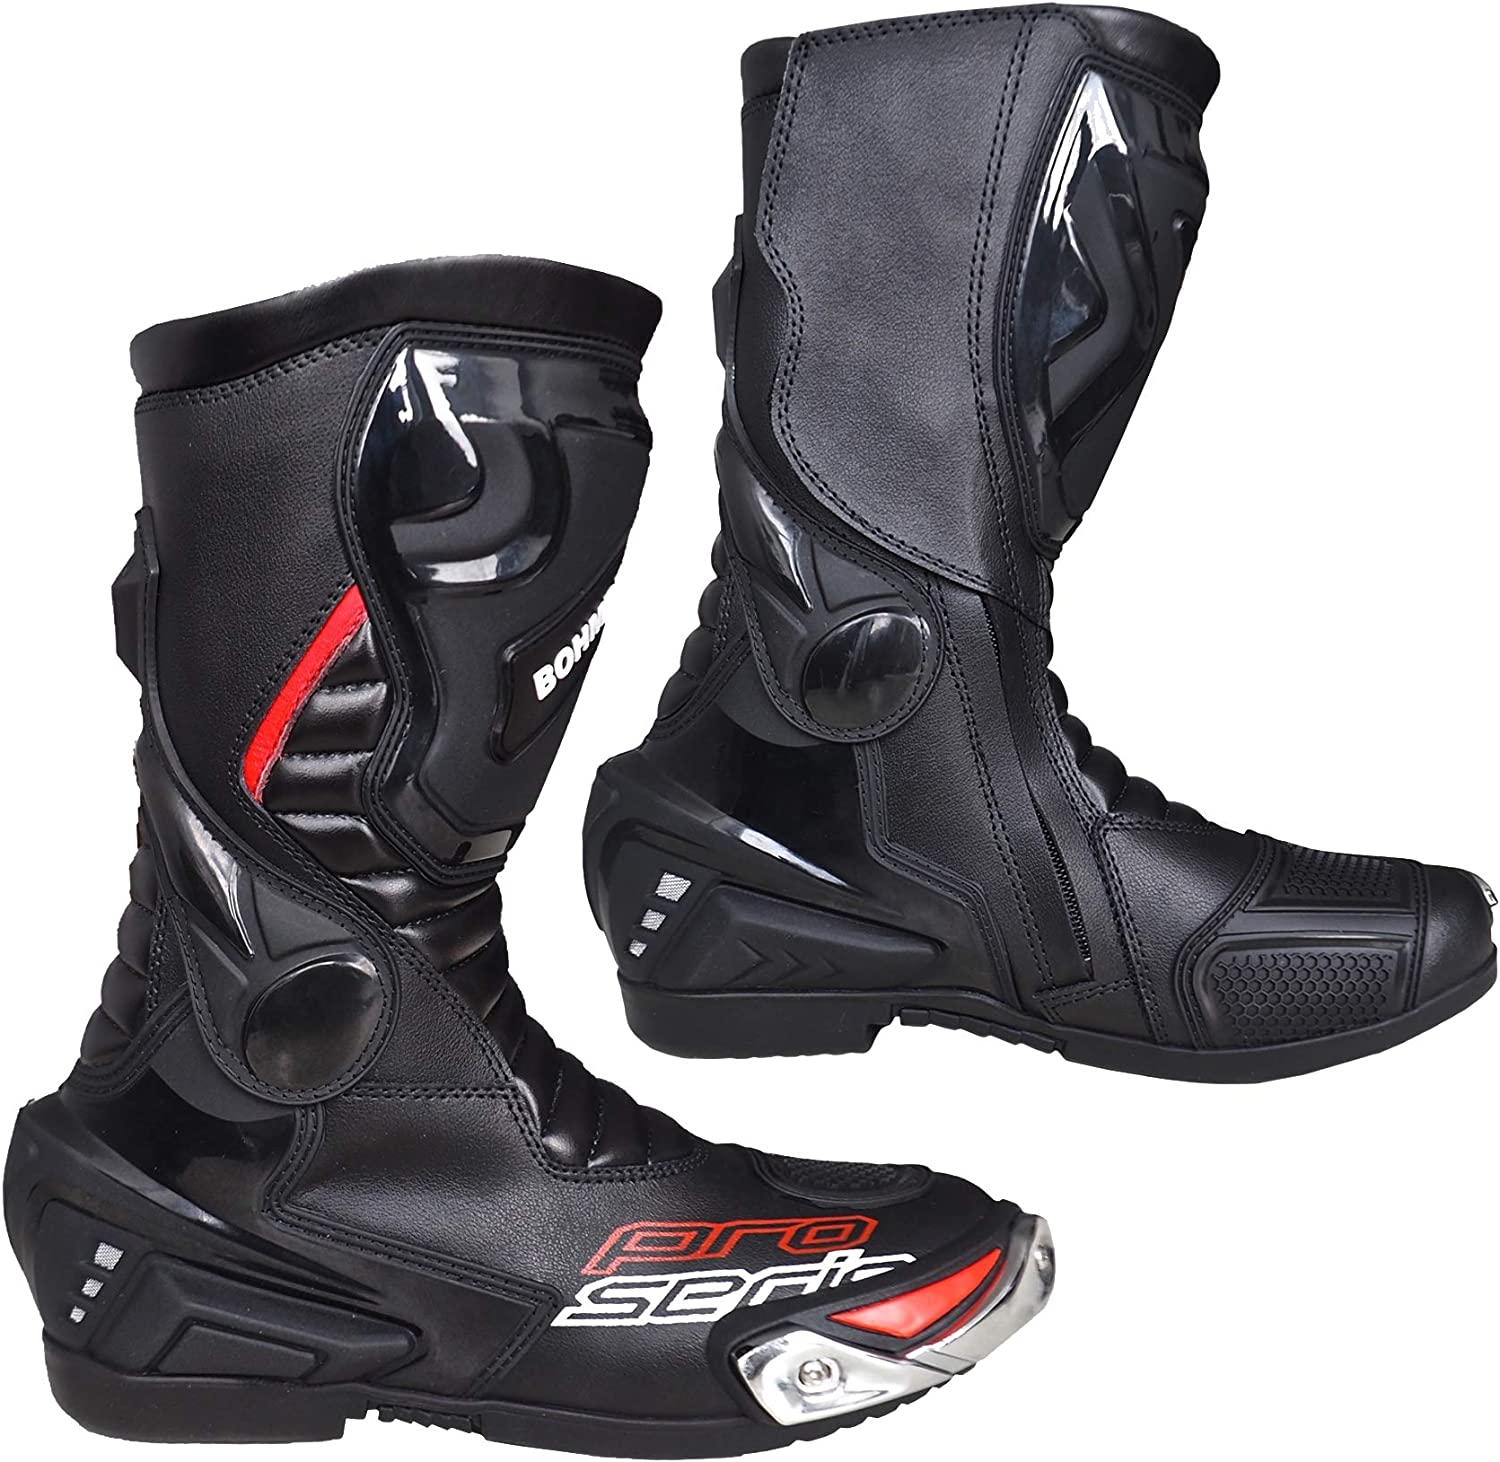 Black UK 10 Motorcycle Shoes Waterproof Made of Heavy Leather with Hard Shell Protectors Sports Boots Made of Leather Mens Motorcycle Boots